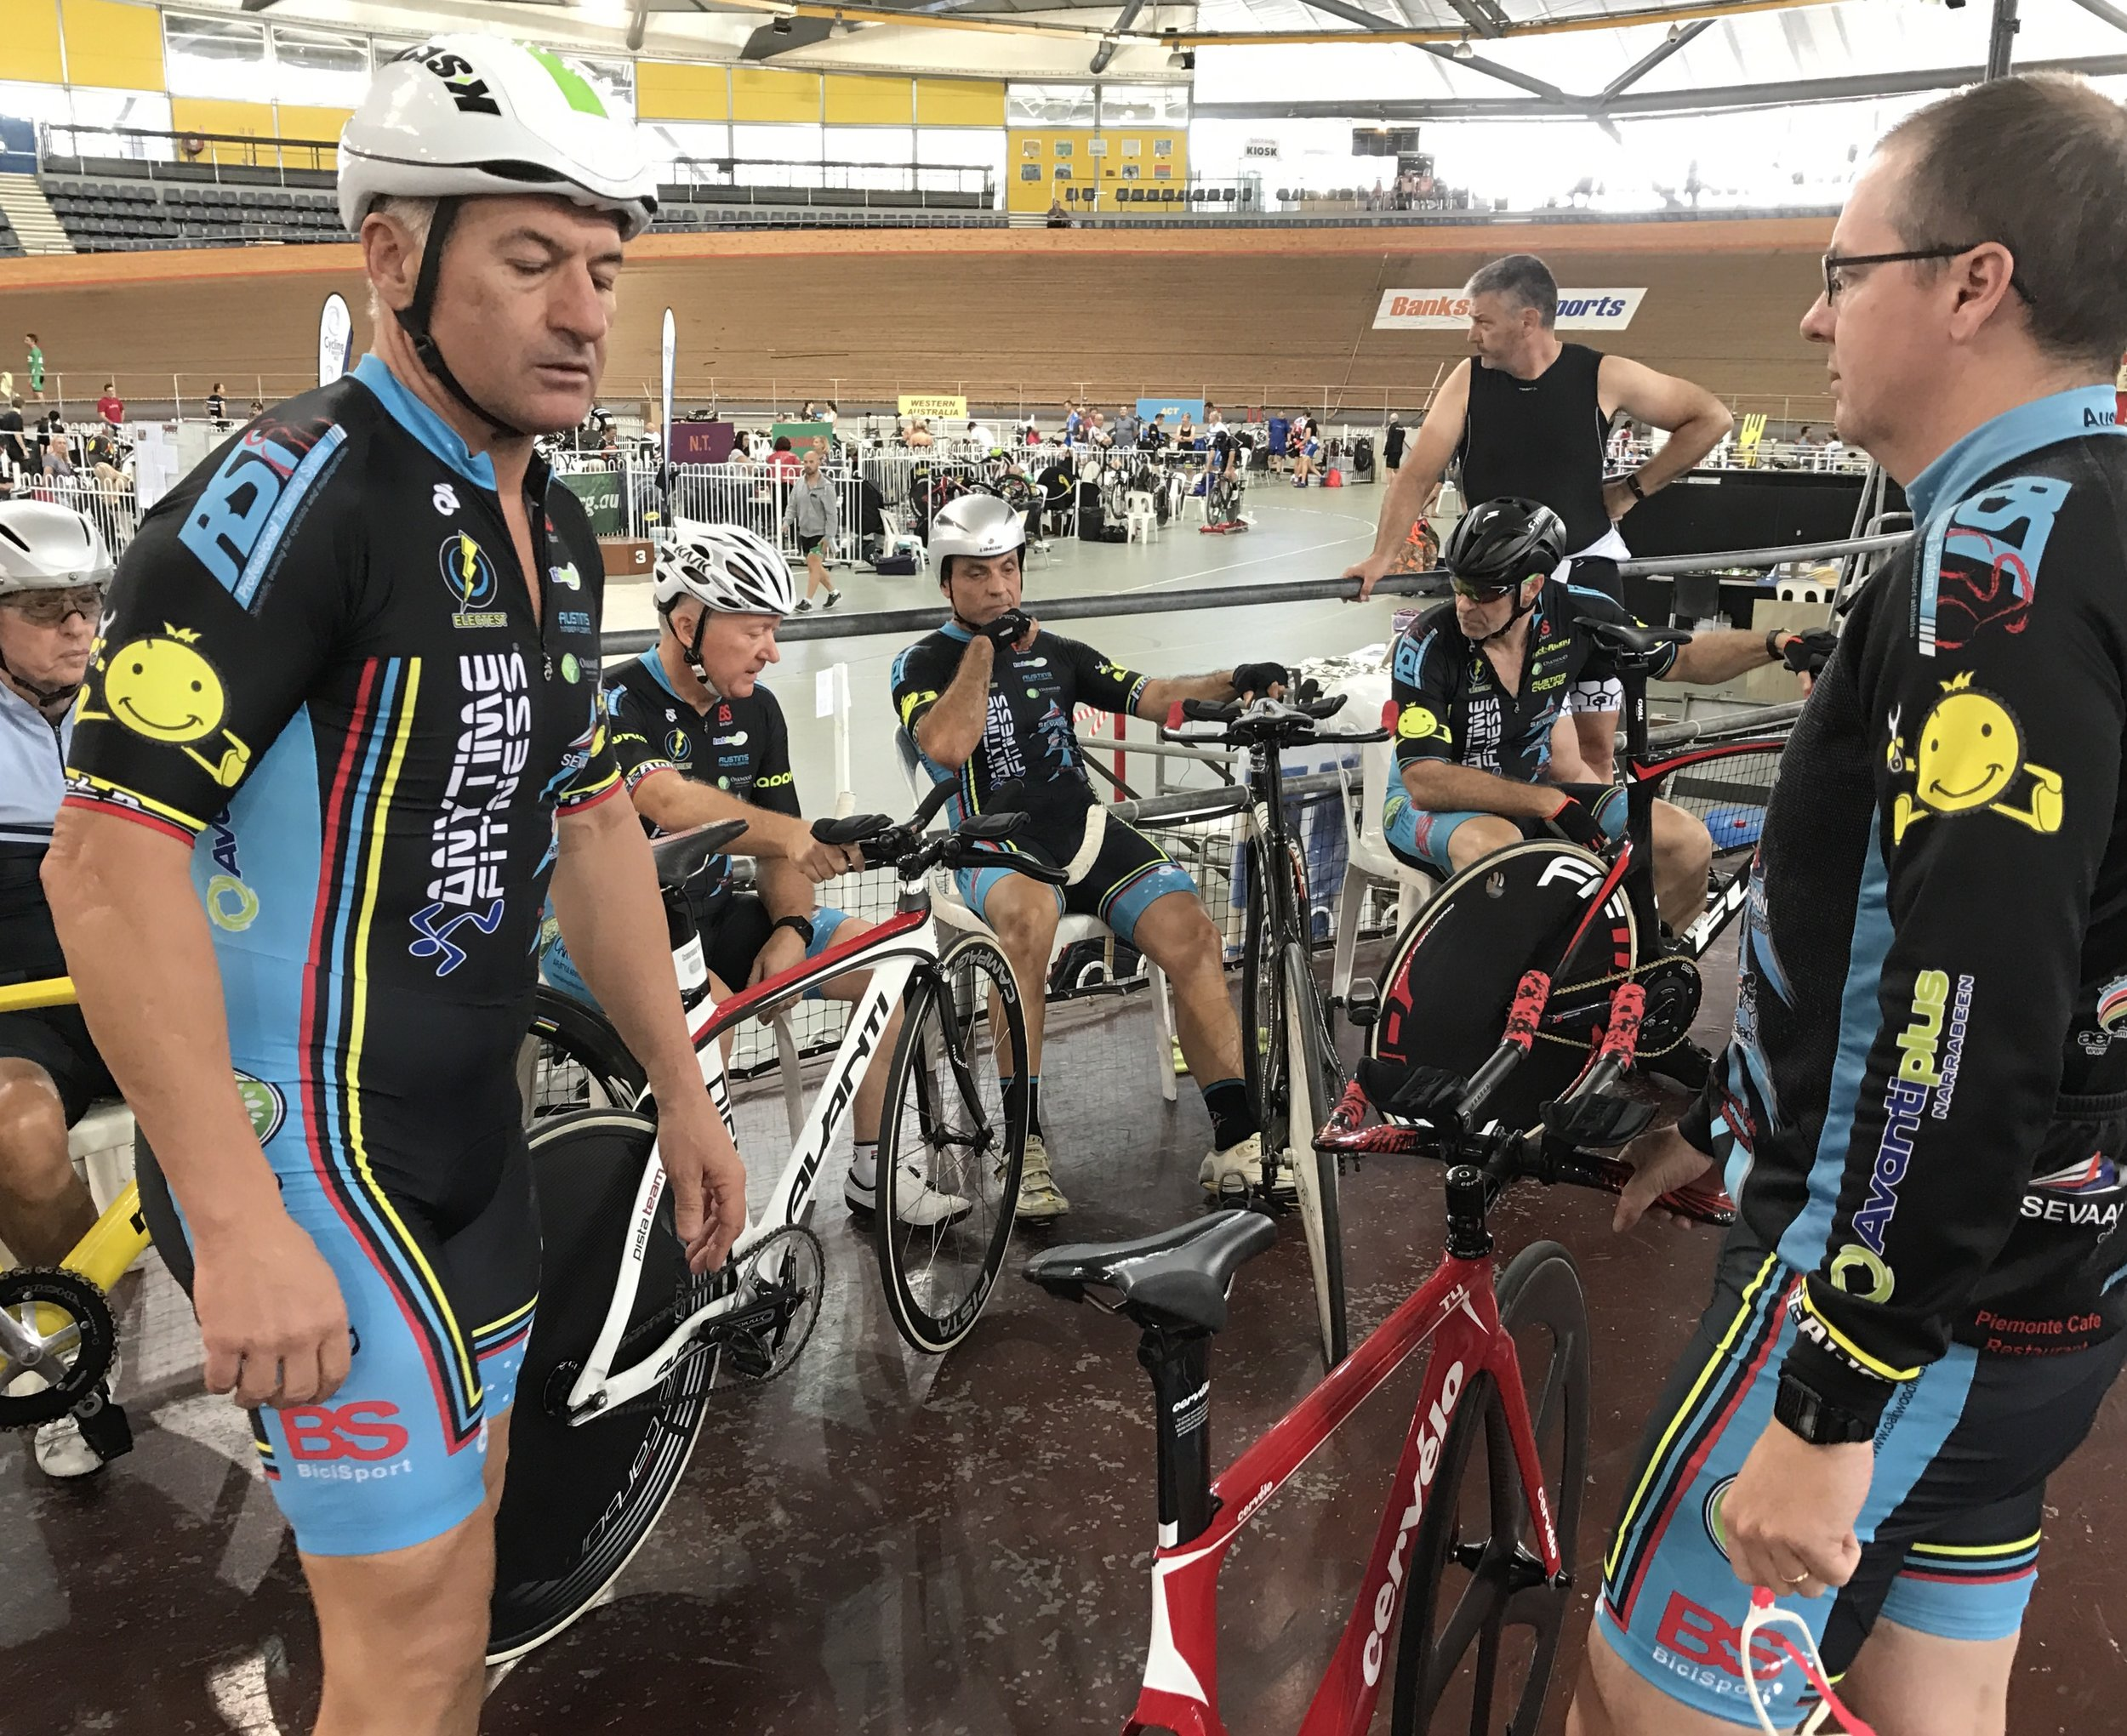 National Masters Track 2017 - BiciSport TP squad of Anthony Colantonio, Graham Cockerton, Dom Zumbo & James Thornton plus David Browne assisting. The team posted 2min 25secs just outside the medal round qualifying time.